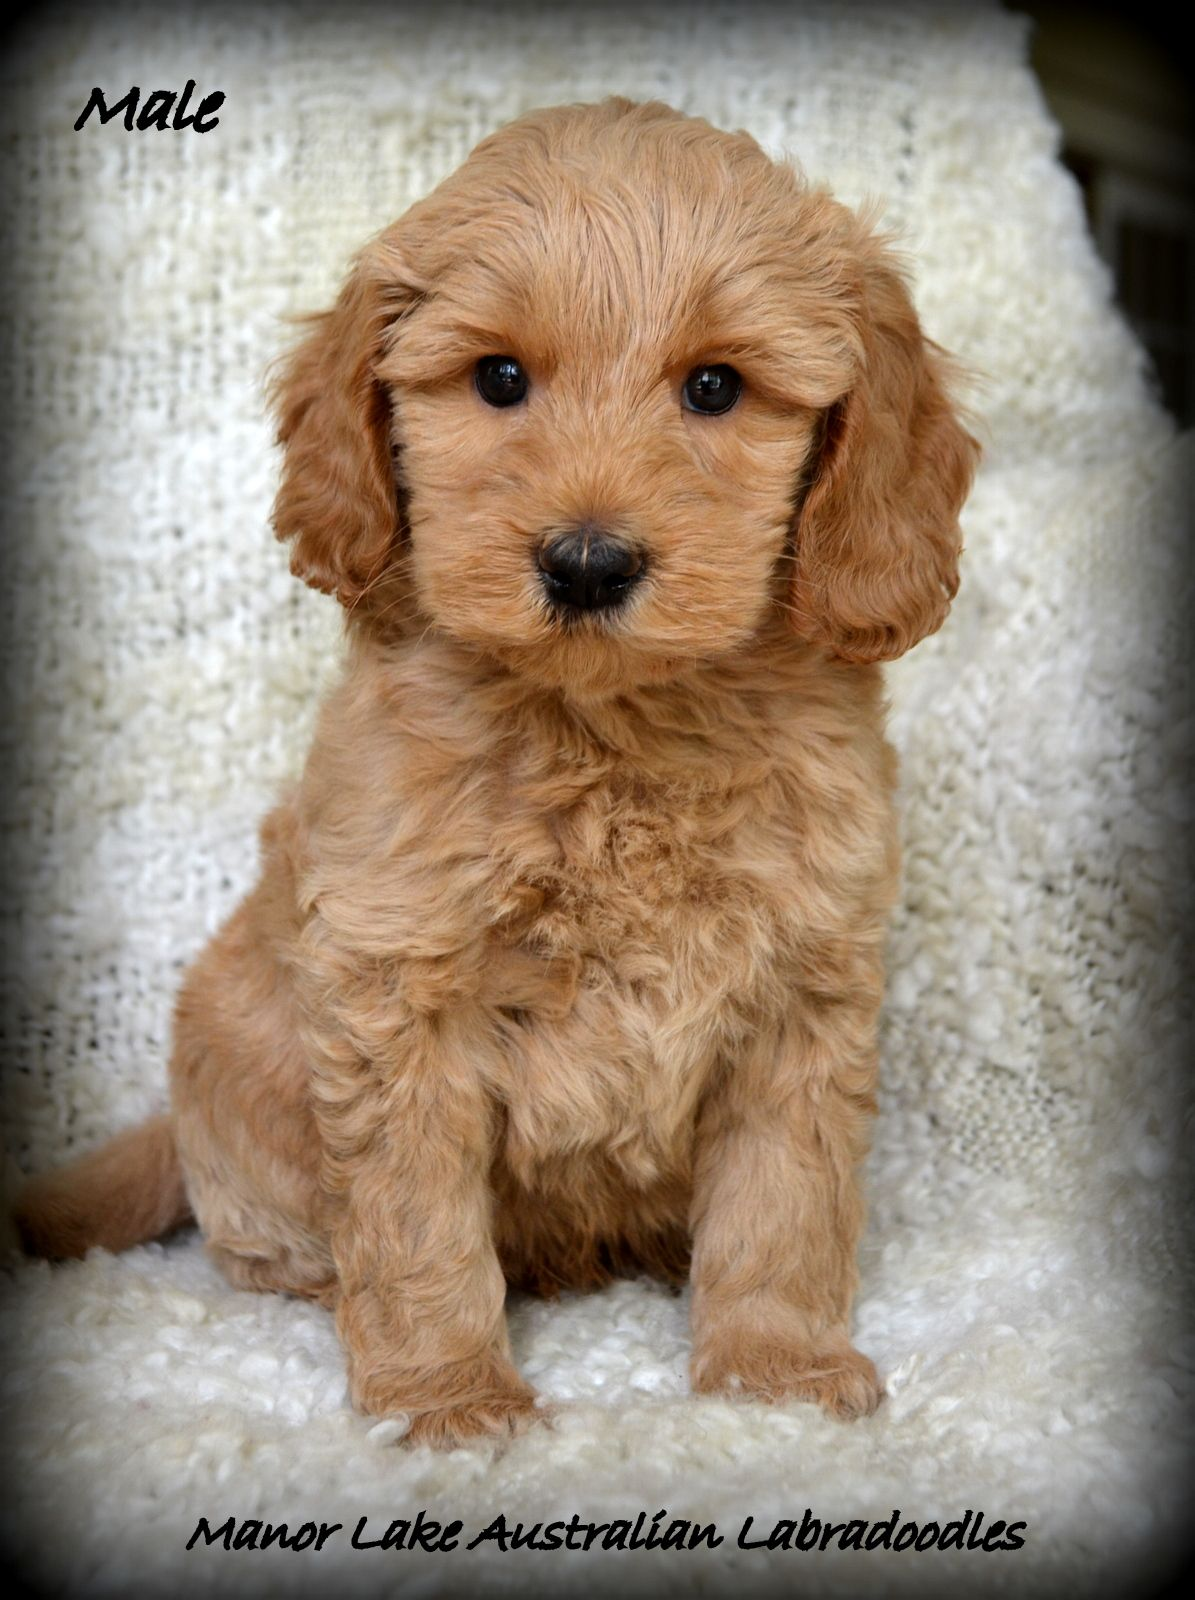 Available Austrailian Labradoodle Puppies Manor Lake Australian Labradoodles Labradoodle Puppy Labradoodle Puppies